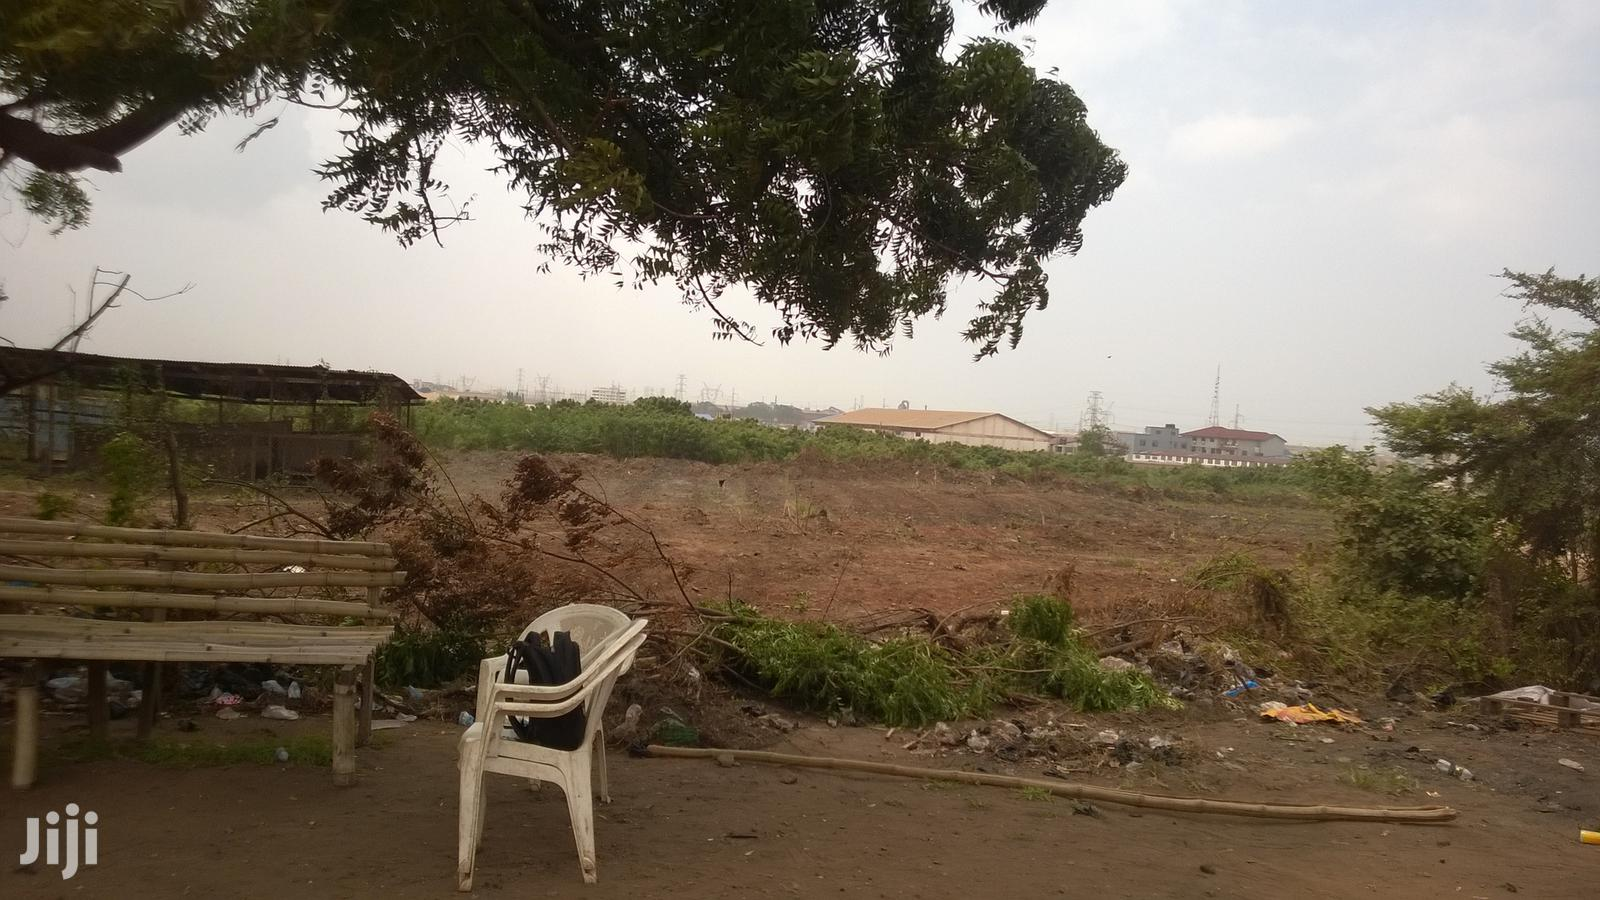 11 Acres Industrial Lot - LIGHT INDUSTRIAL AREA, ASHAIMAN | Land & Plots For Sale for sale in Tema Metropolitan, Greater Accra, Ghana